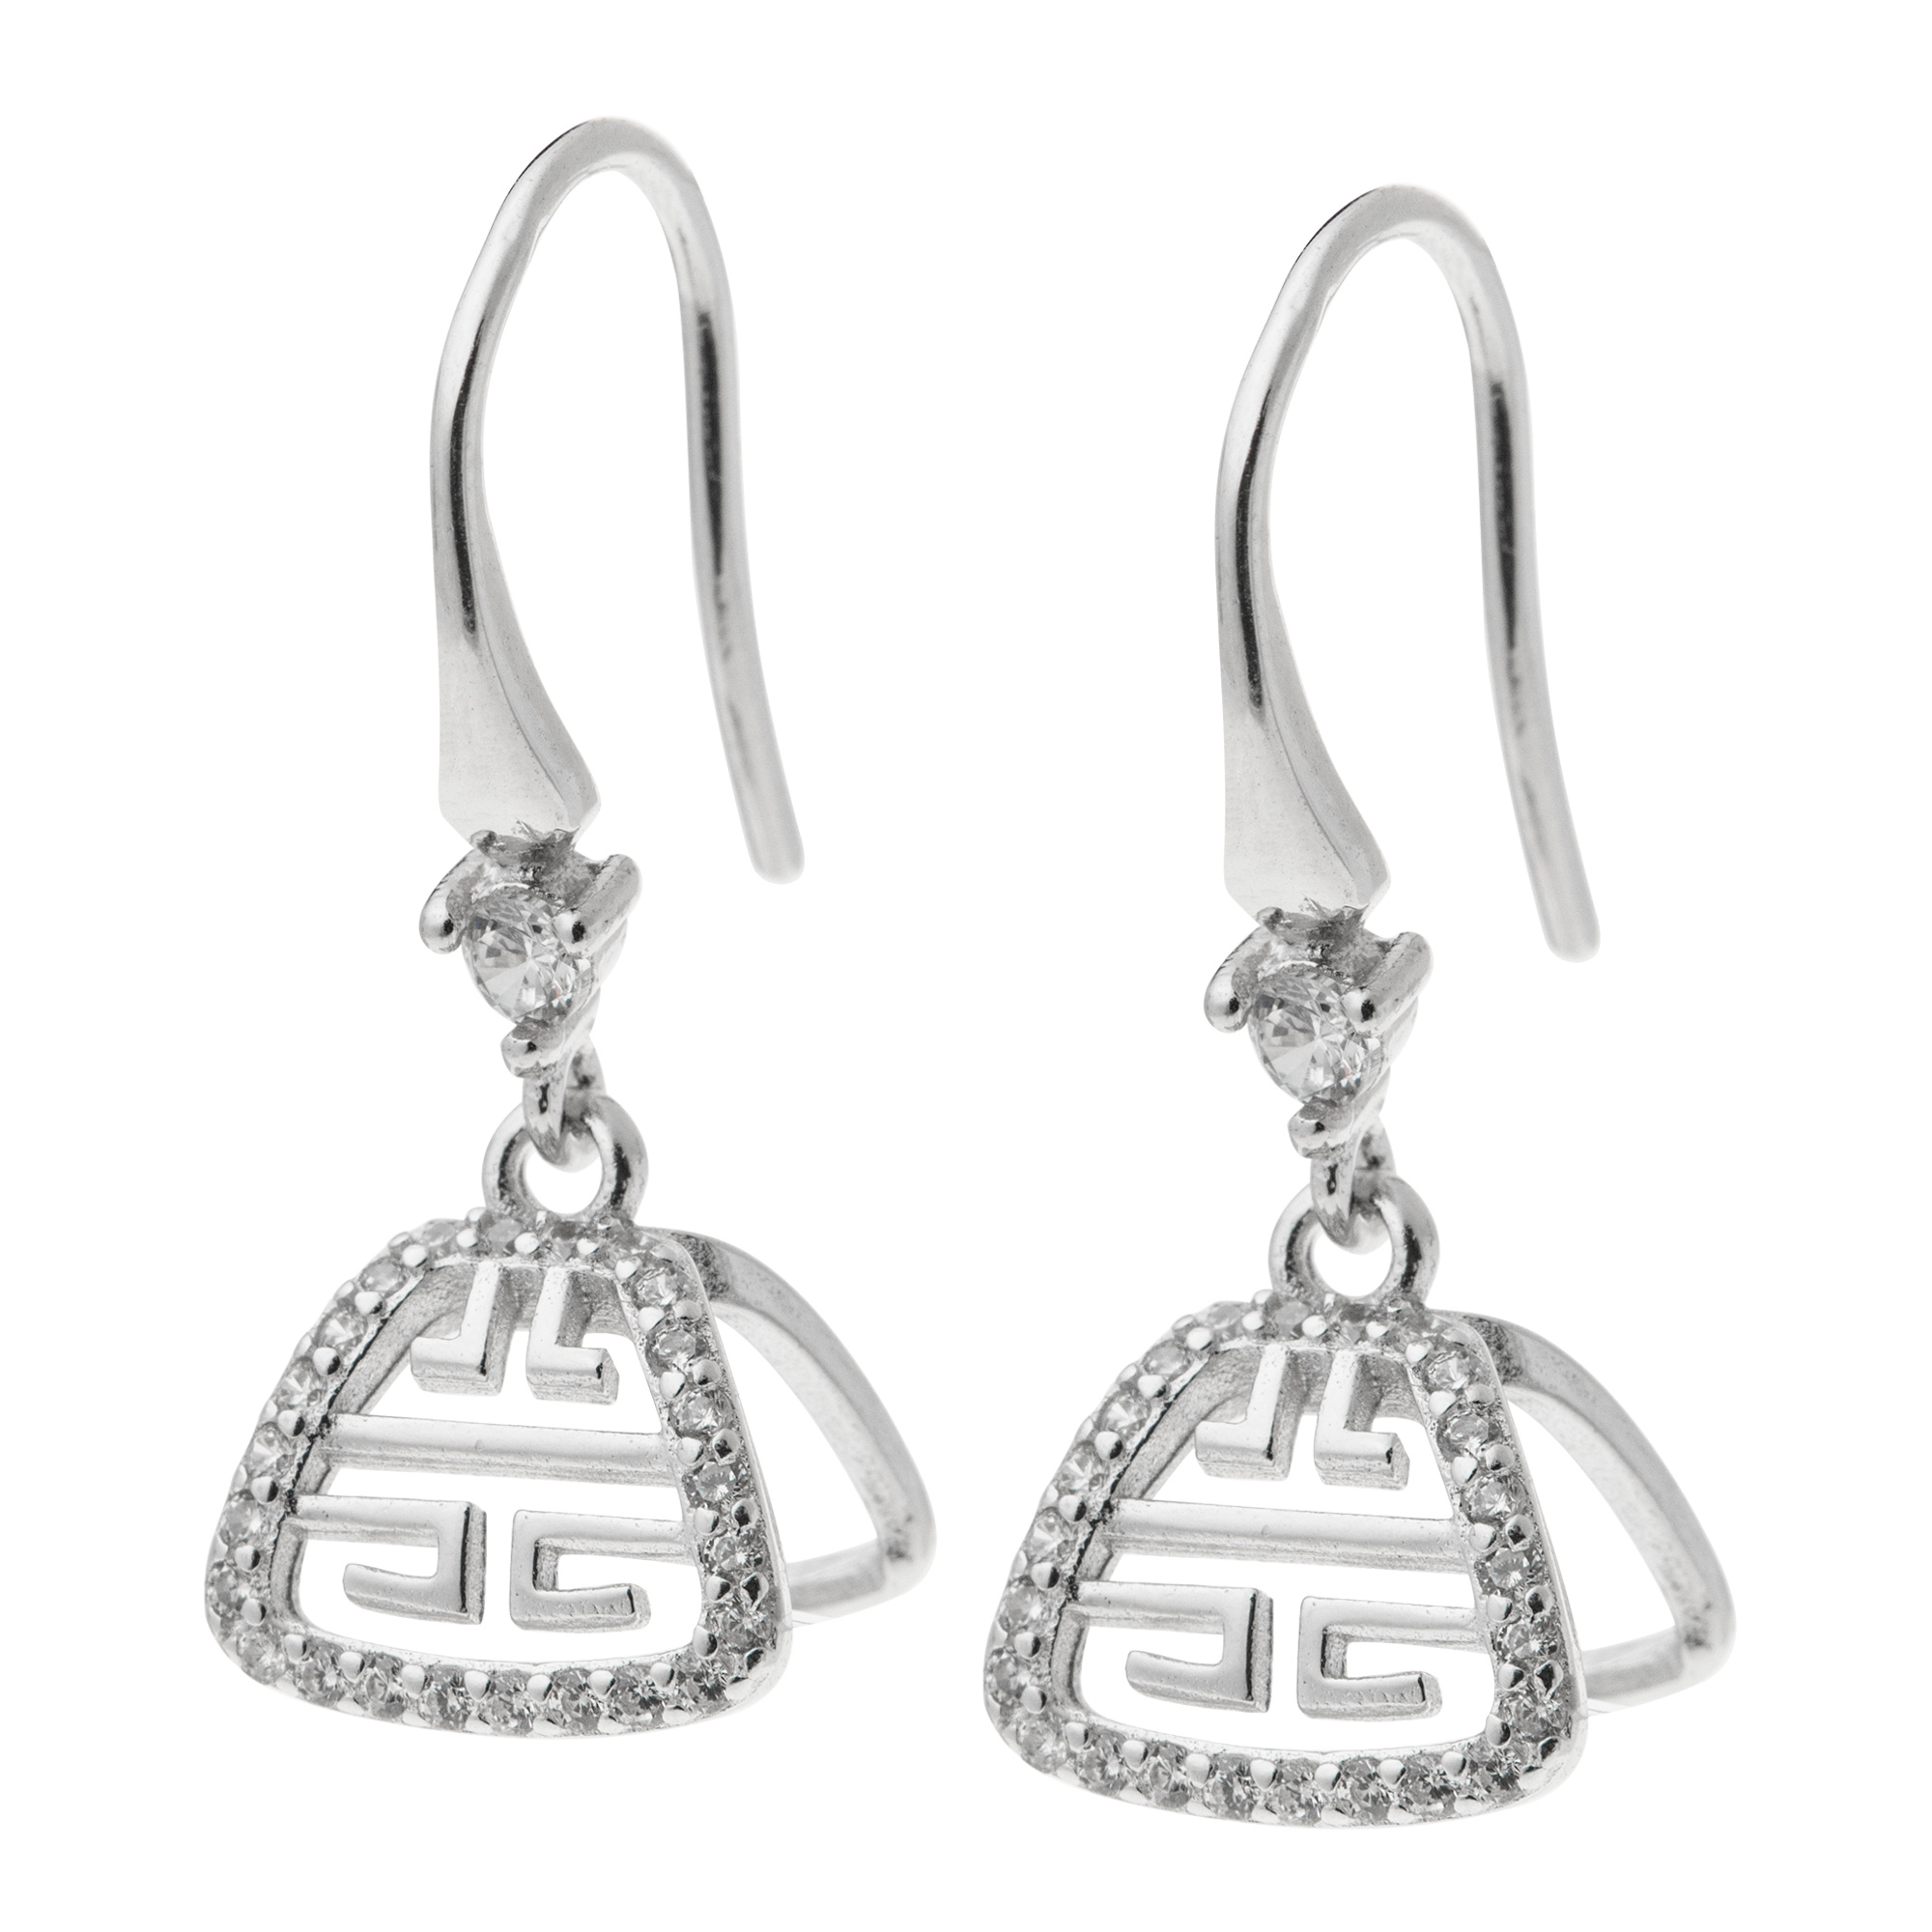 2x Rhodium on Sterling Silver CZ Chinese Forture Bail Earwire Hook Dangle Earring Connector